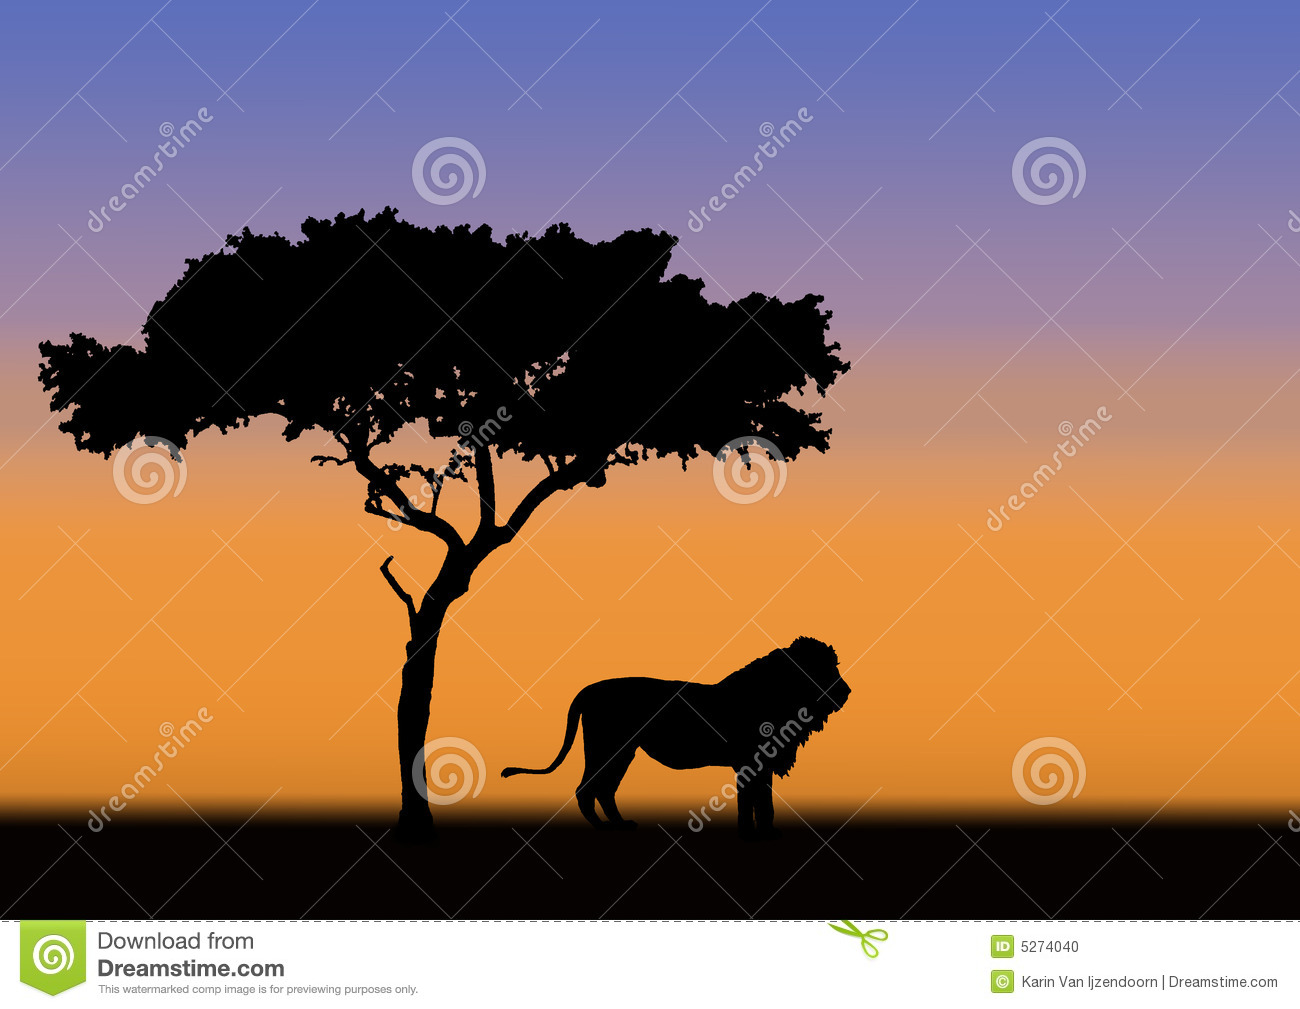 Acacia And Lion Silhouette Stock Photo - Image: 5274040